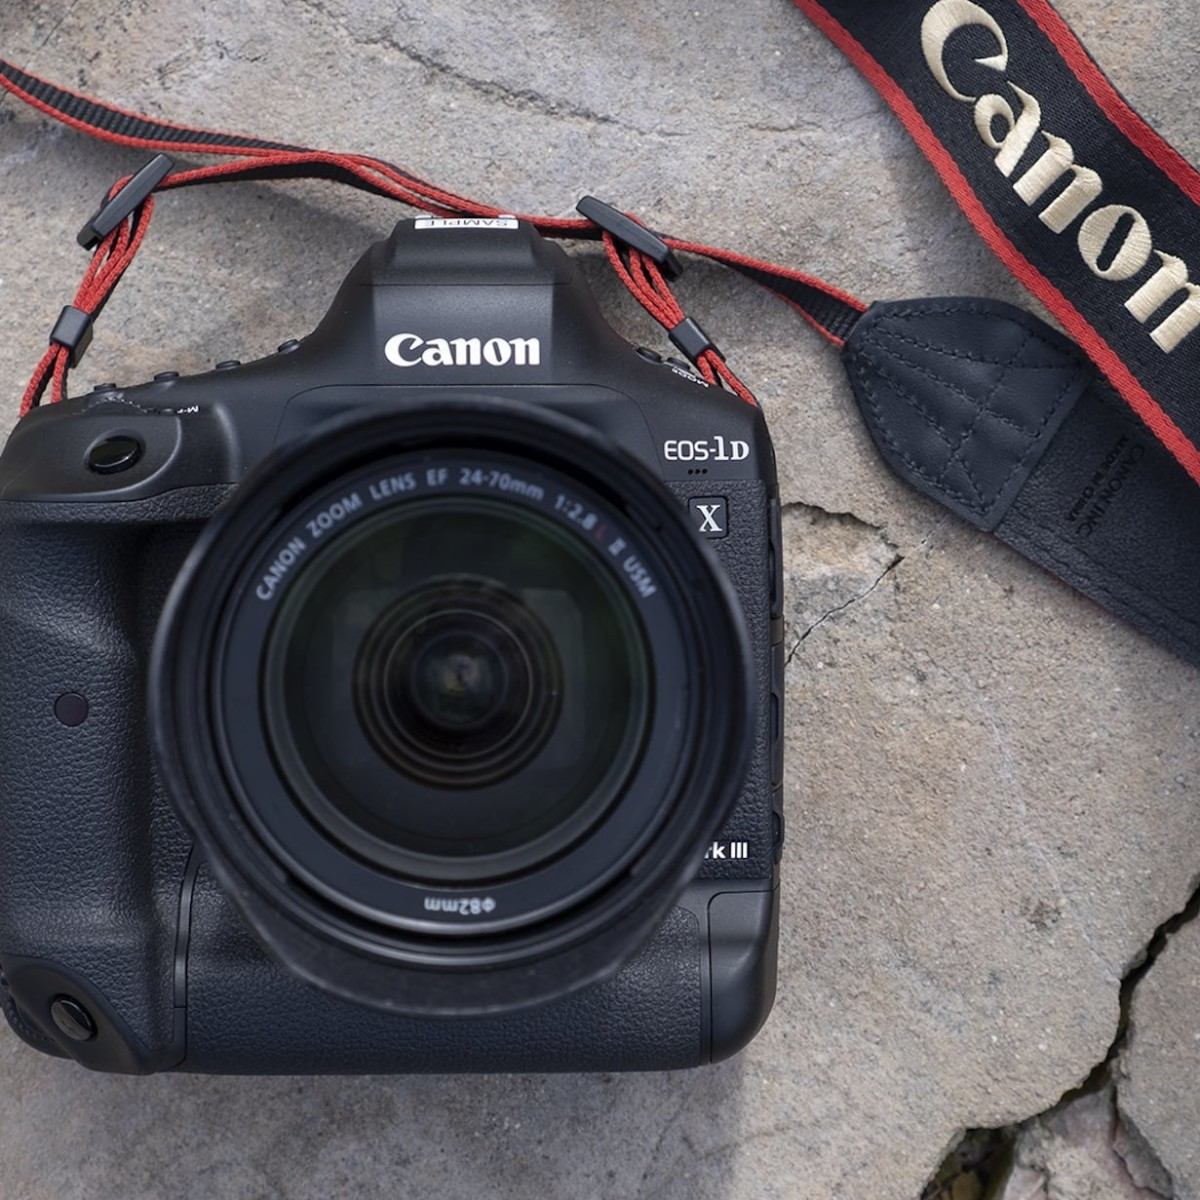 Canon EOS-1D X Mark III DSLR Camera is designed for professional sports photographers